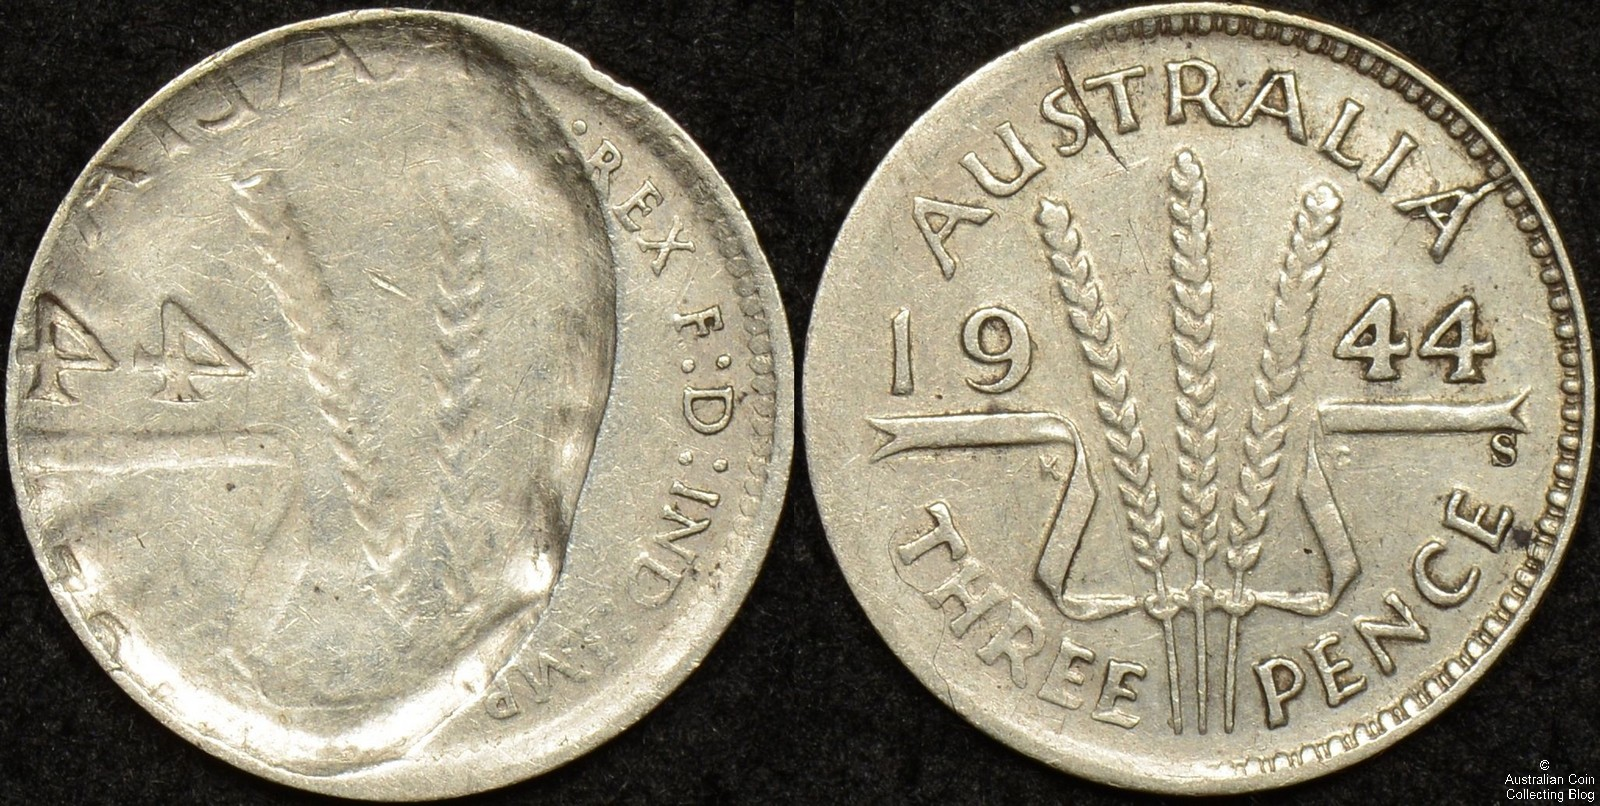 Australia 1944s Threepence Partial Brockage Indent Error